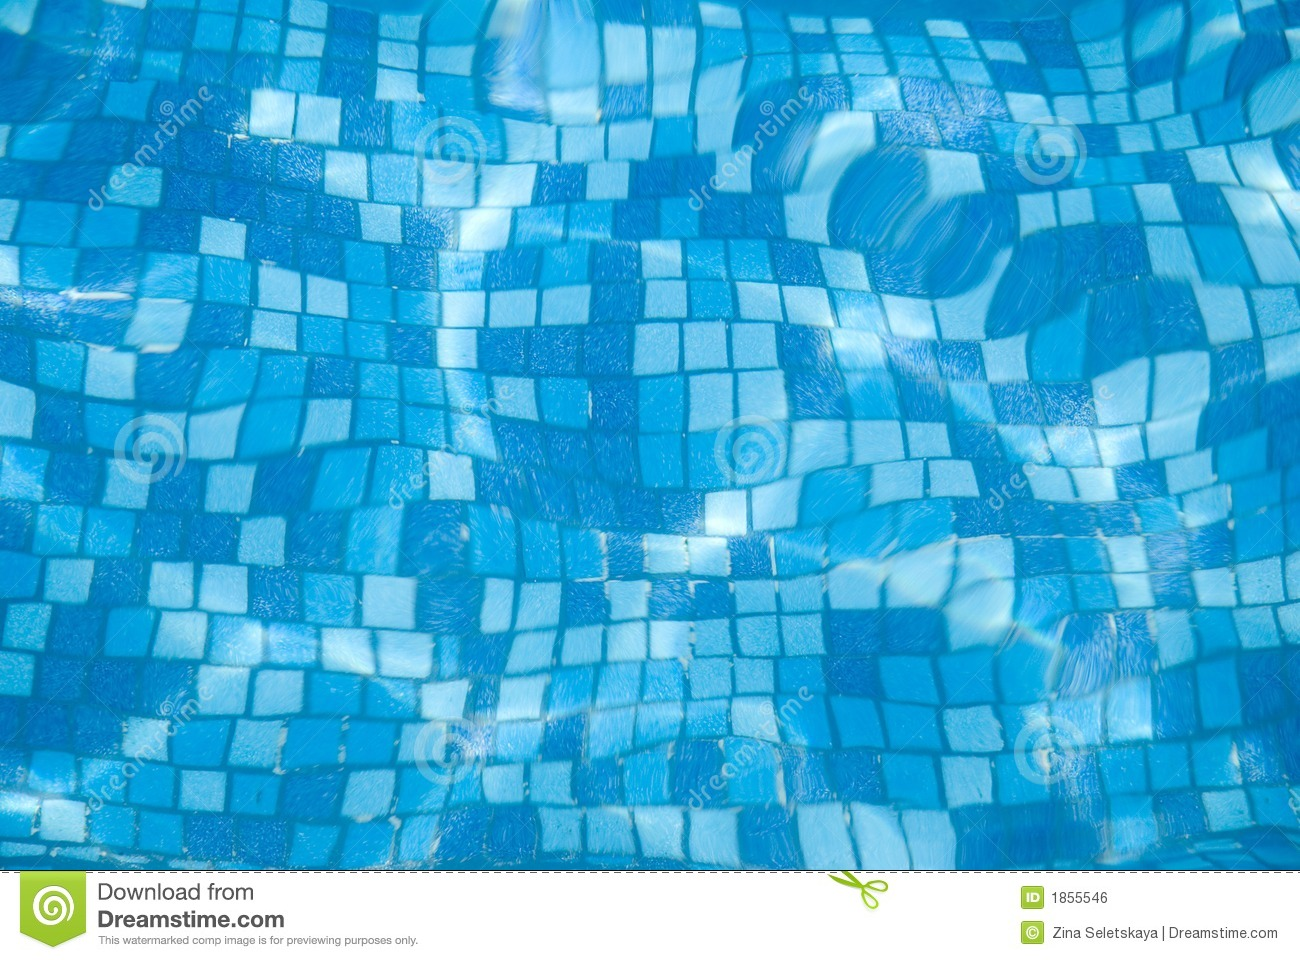 Limpiador De Fondos De Piscina Blue Pool Background 4 Stock Photo Image Of Ripple Blue